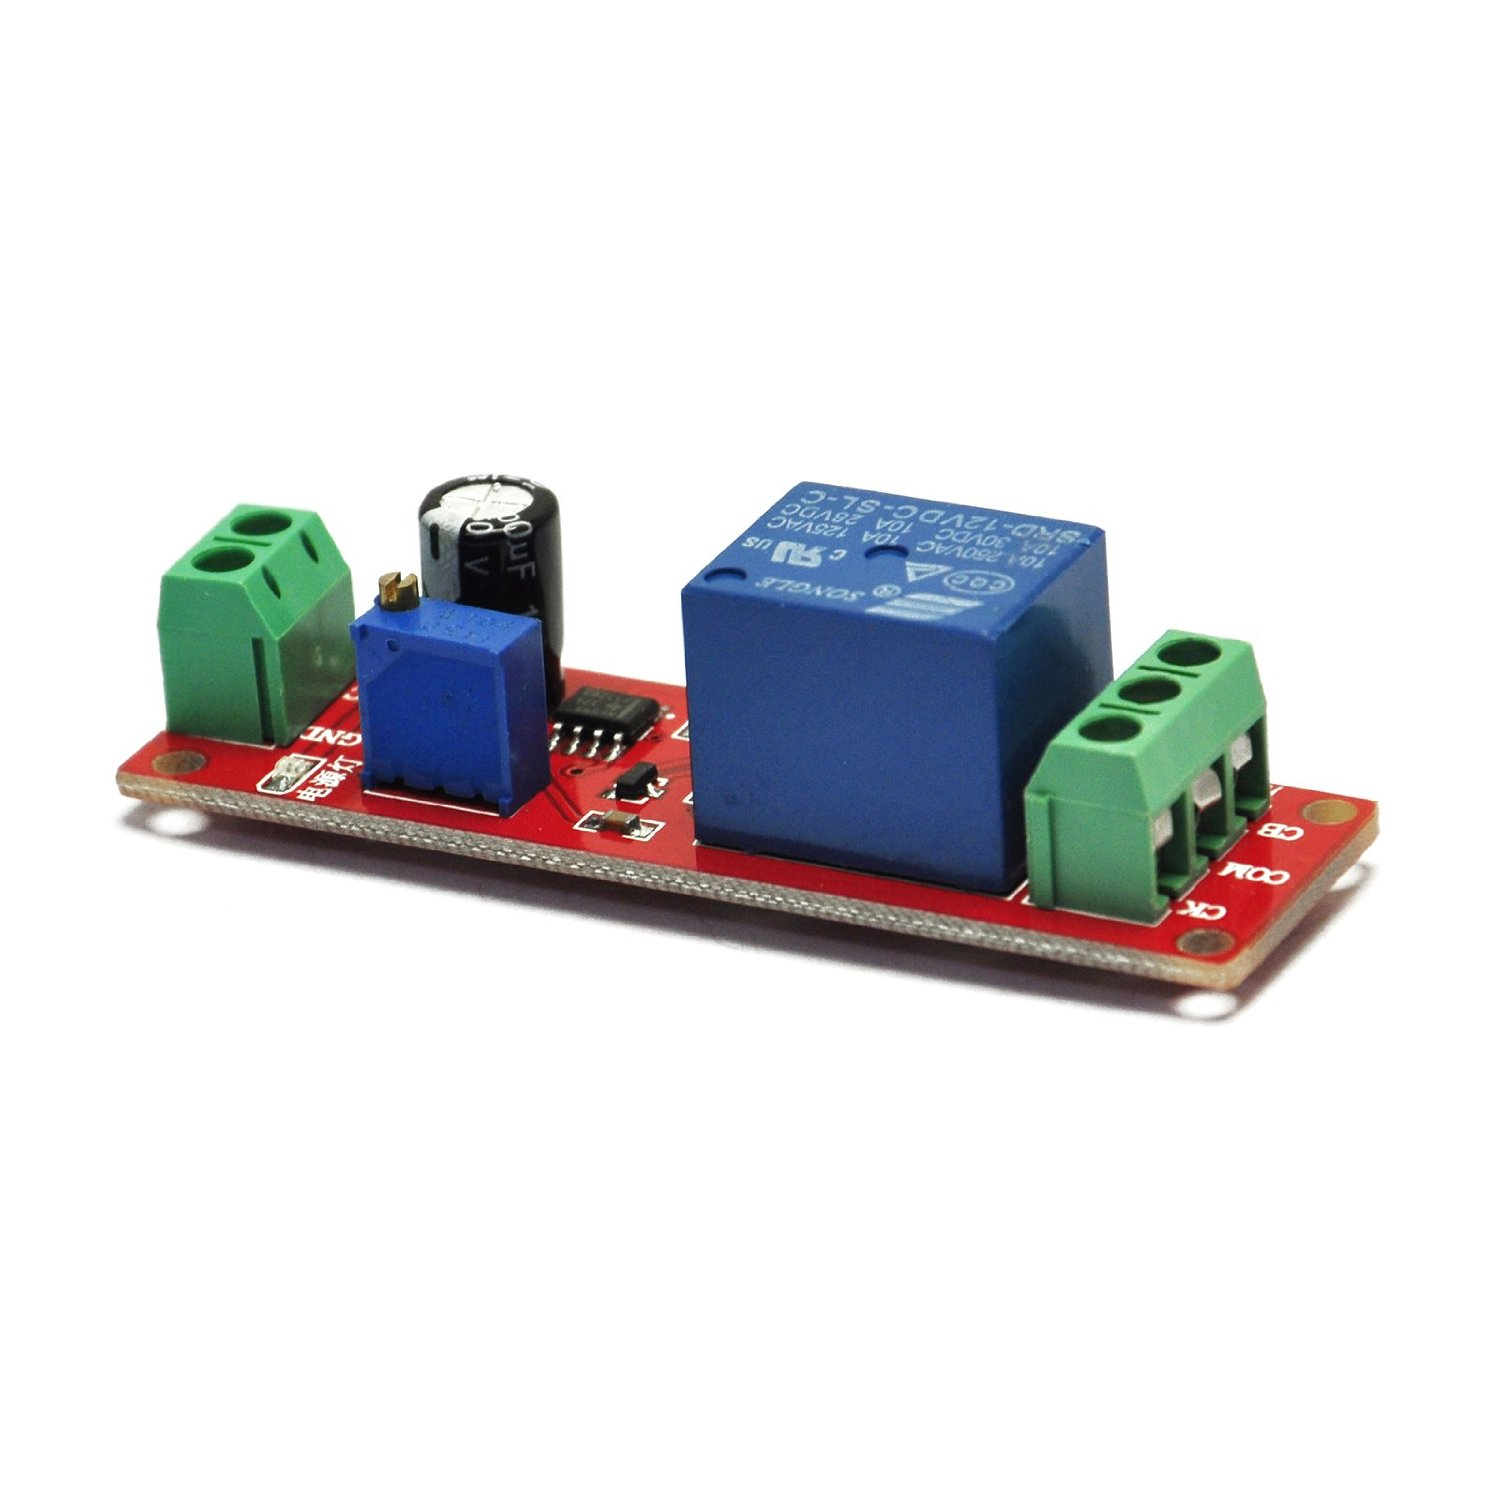 Cheap Ne555 Timer Find Deals On Line At Alibabacom Ic Ne555p 555 Dip 8 Timers New High Quality Integrated Circuit Get Quotations Gikfun 12v Delay Switch Adjustable 0 To 10 Second With Oscillator Ek1237